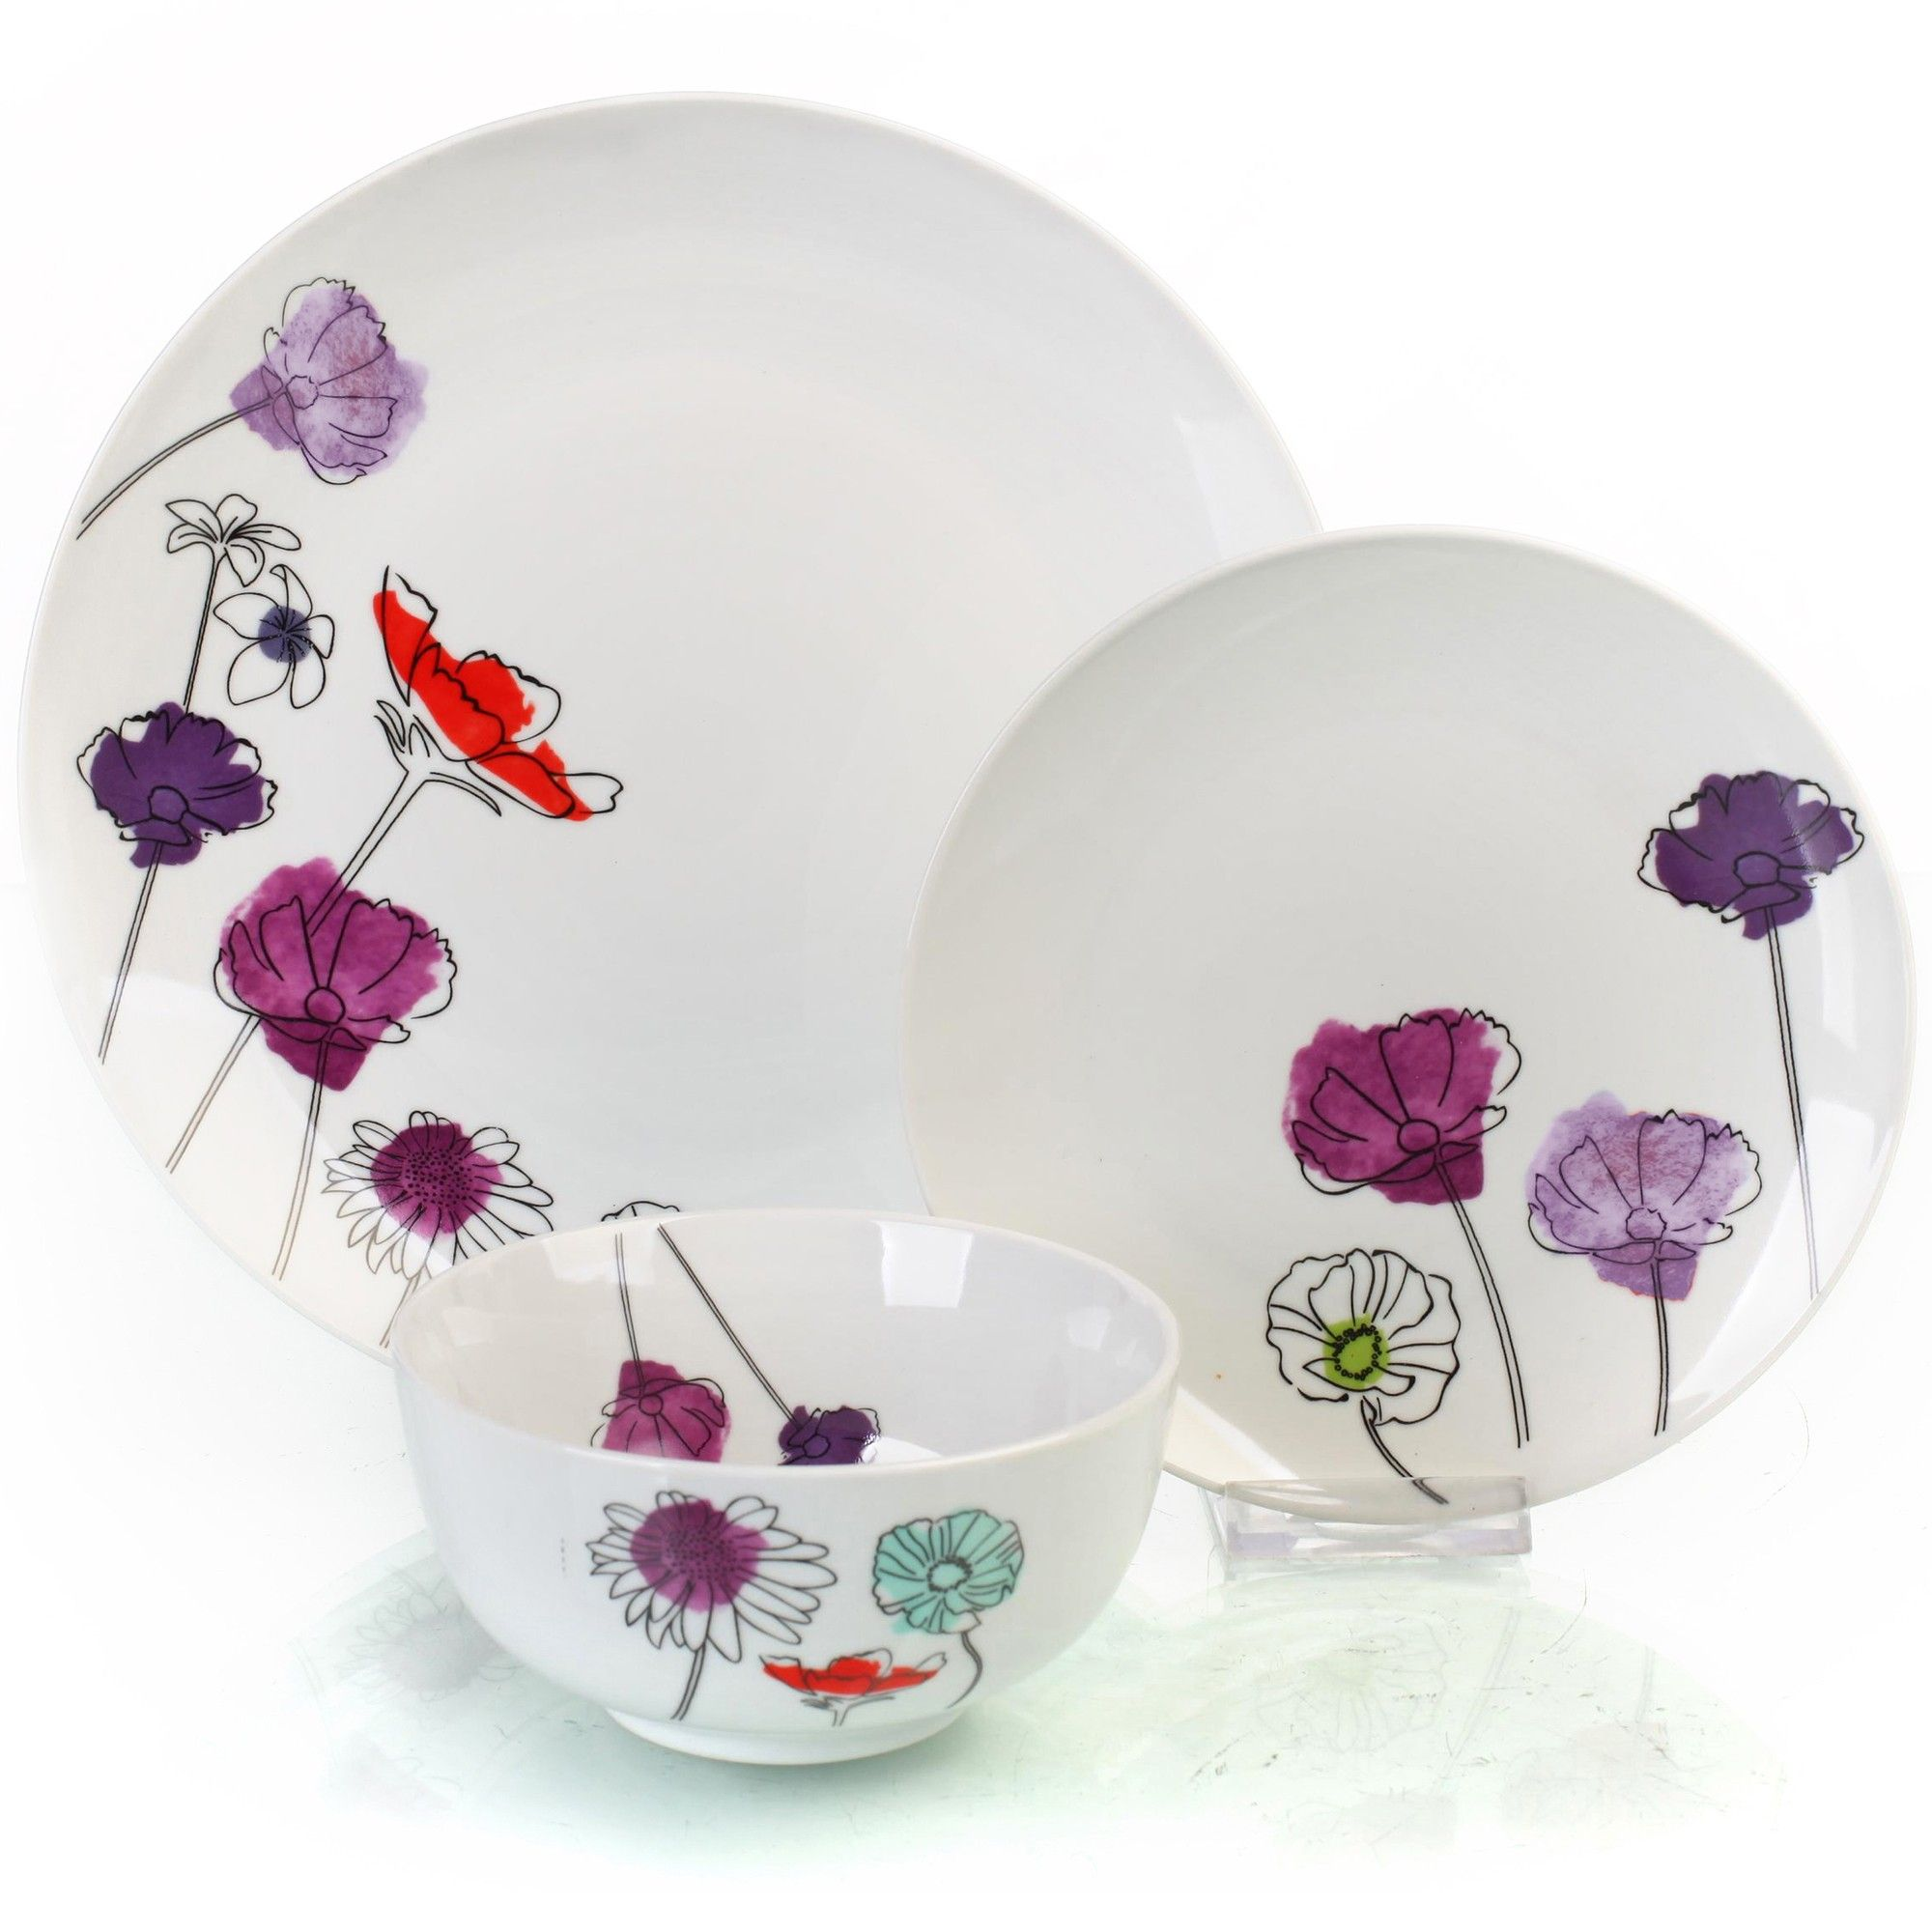 12pc Aster Dinner Set #Sabichi #dinnerware #dining #plates #crockery  #pastels #floral #chintz #cute #lovely #flowers #purple #lilac #lavender  #red #bright